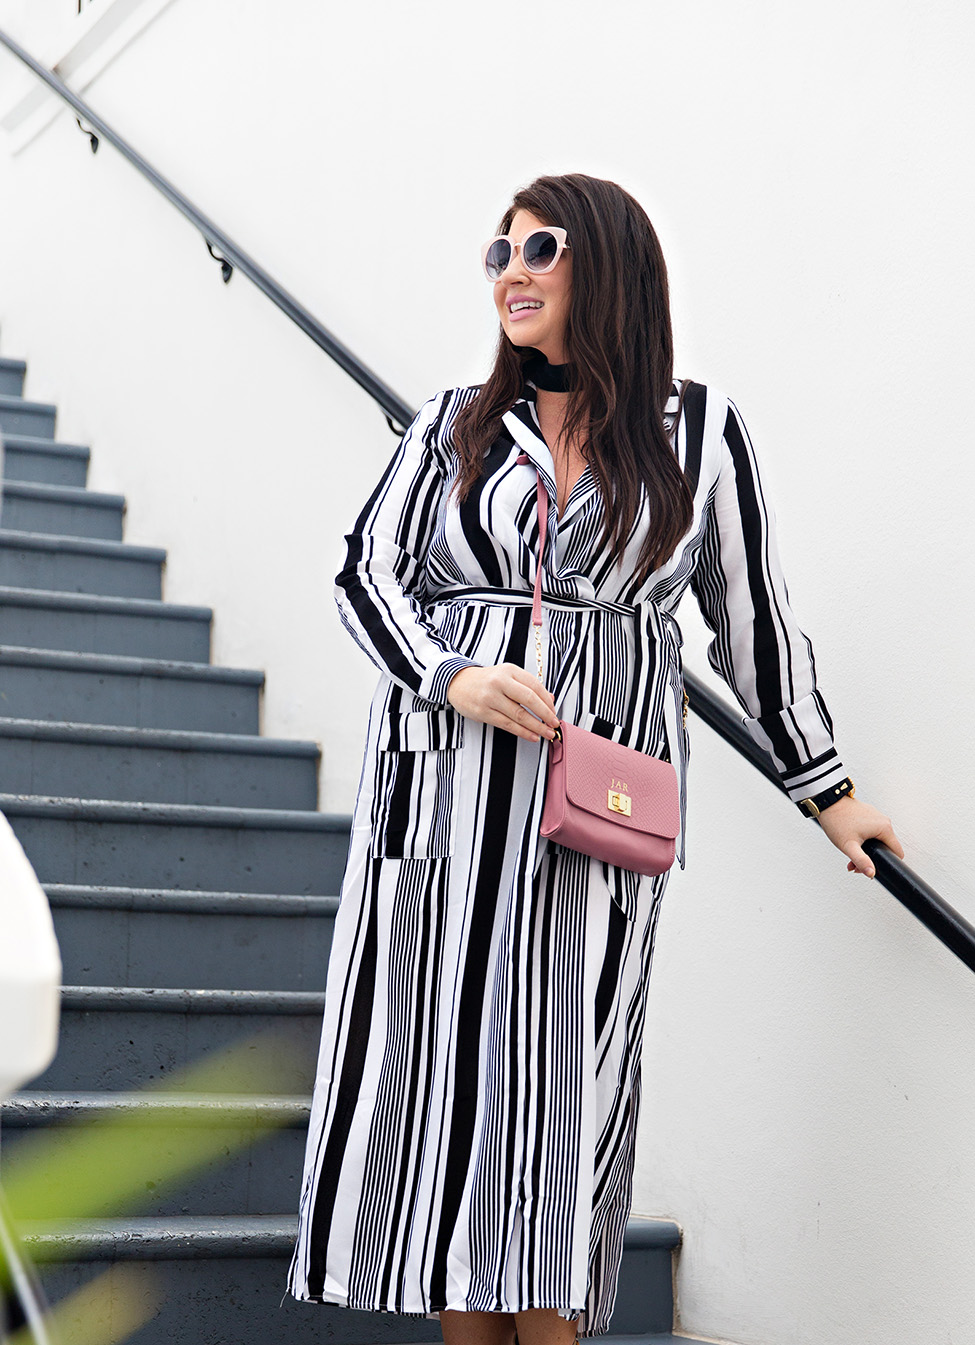 30A Street Style Jami Ray The Pearl Rosemary Beach Black and White Stripes 1